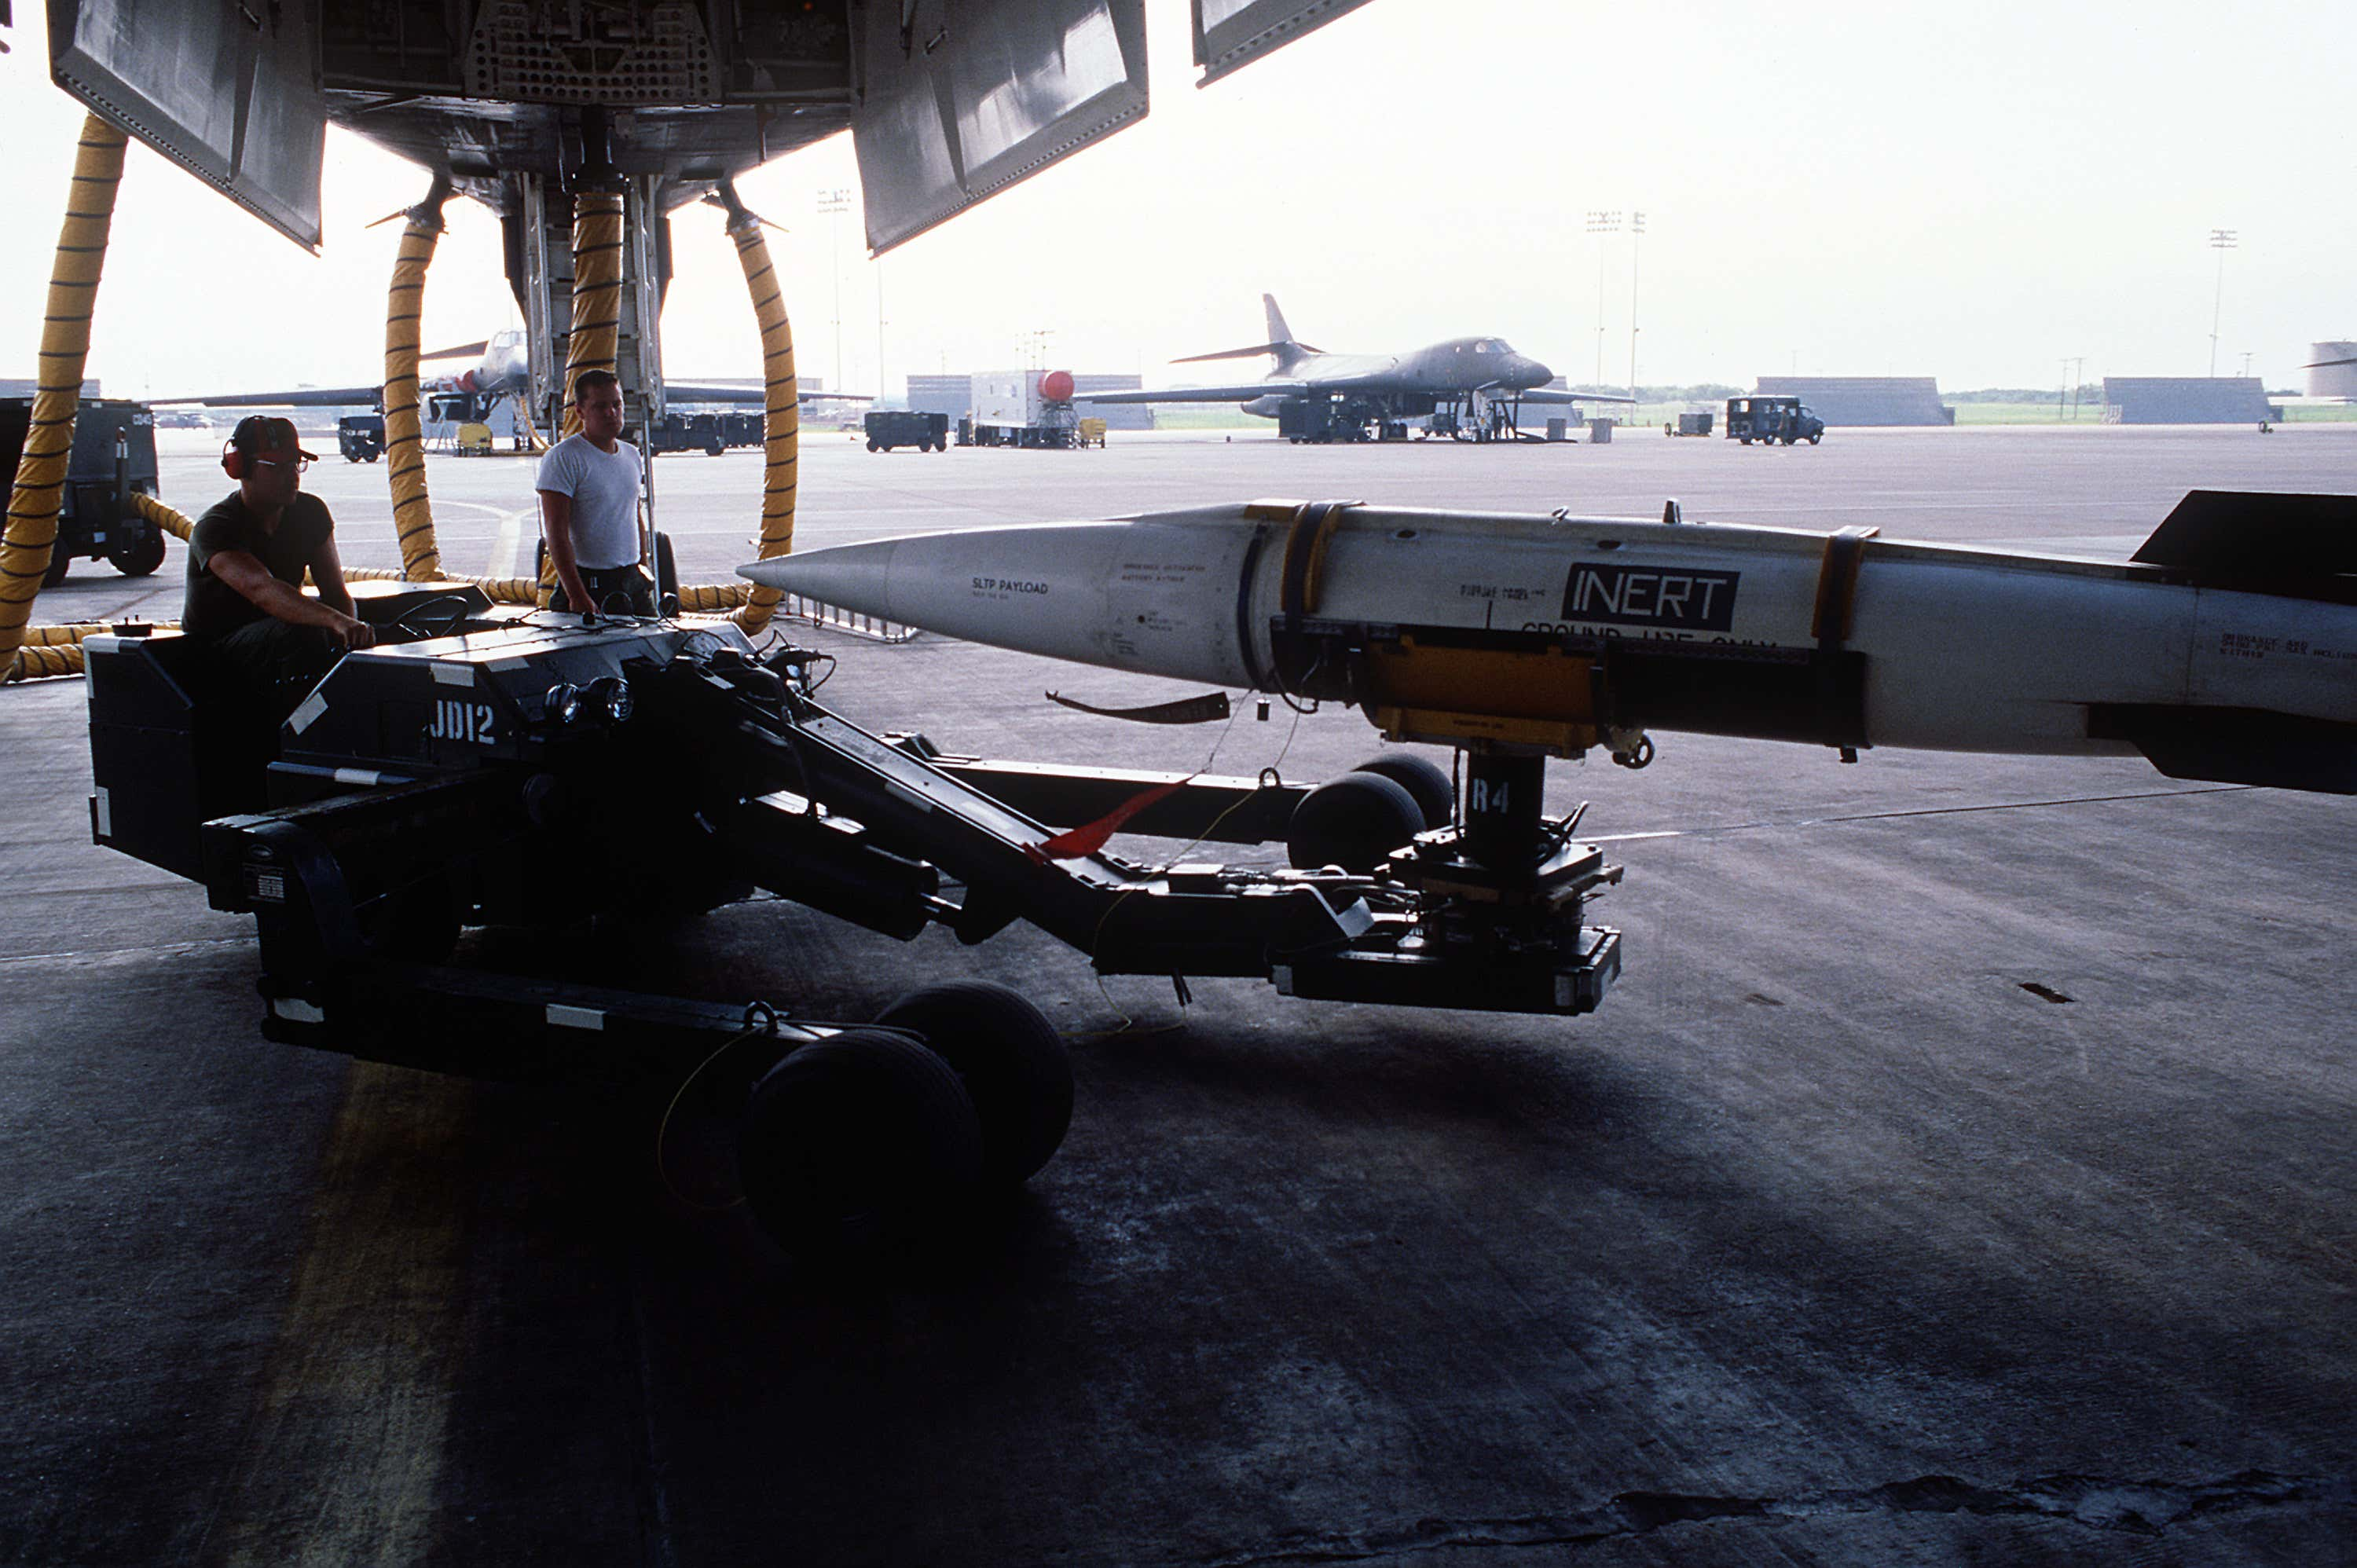 This Stretched Super FB-111 Was A Low-Cost Challenger To The B-1 Bomber